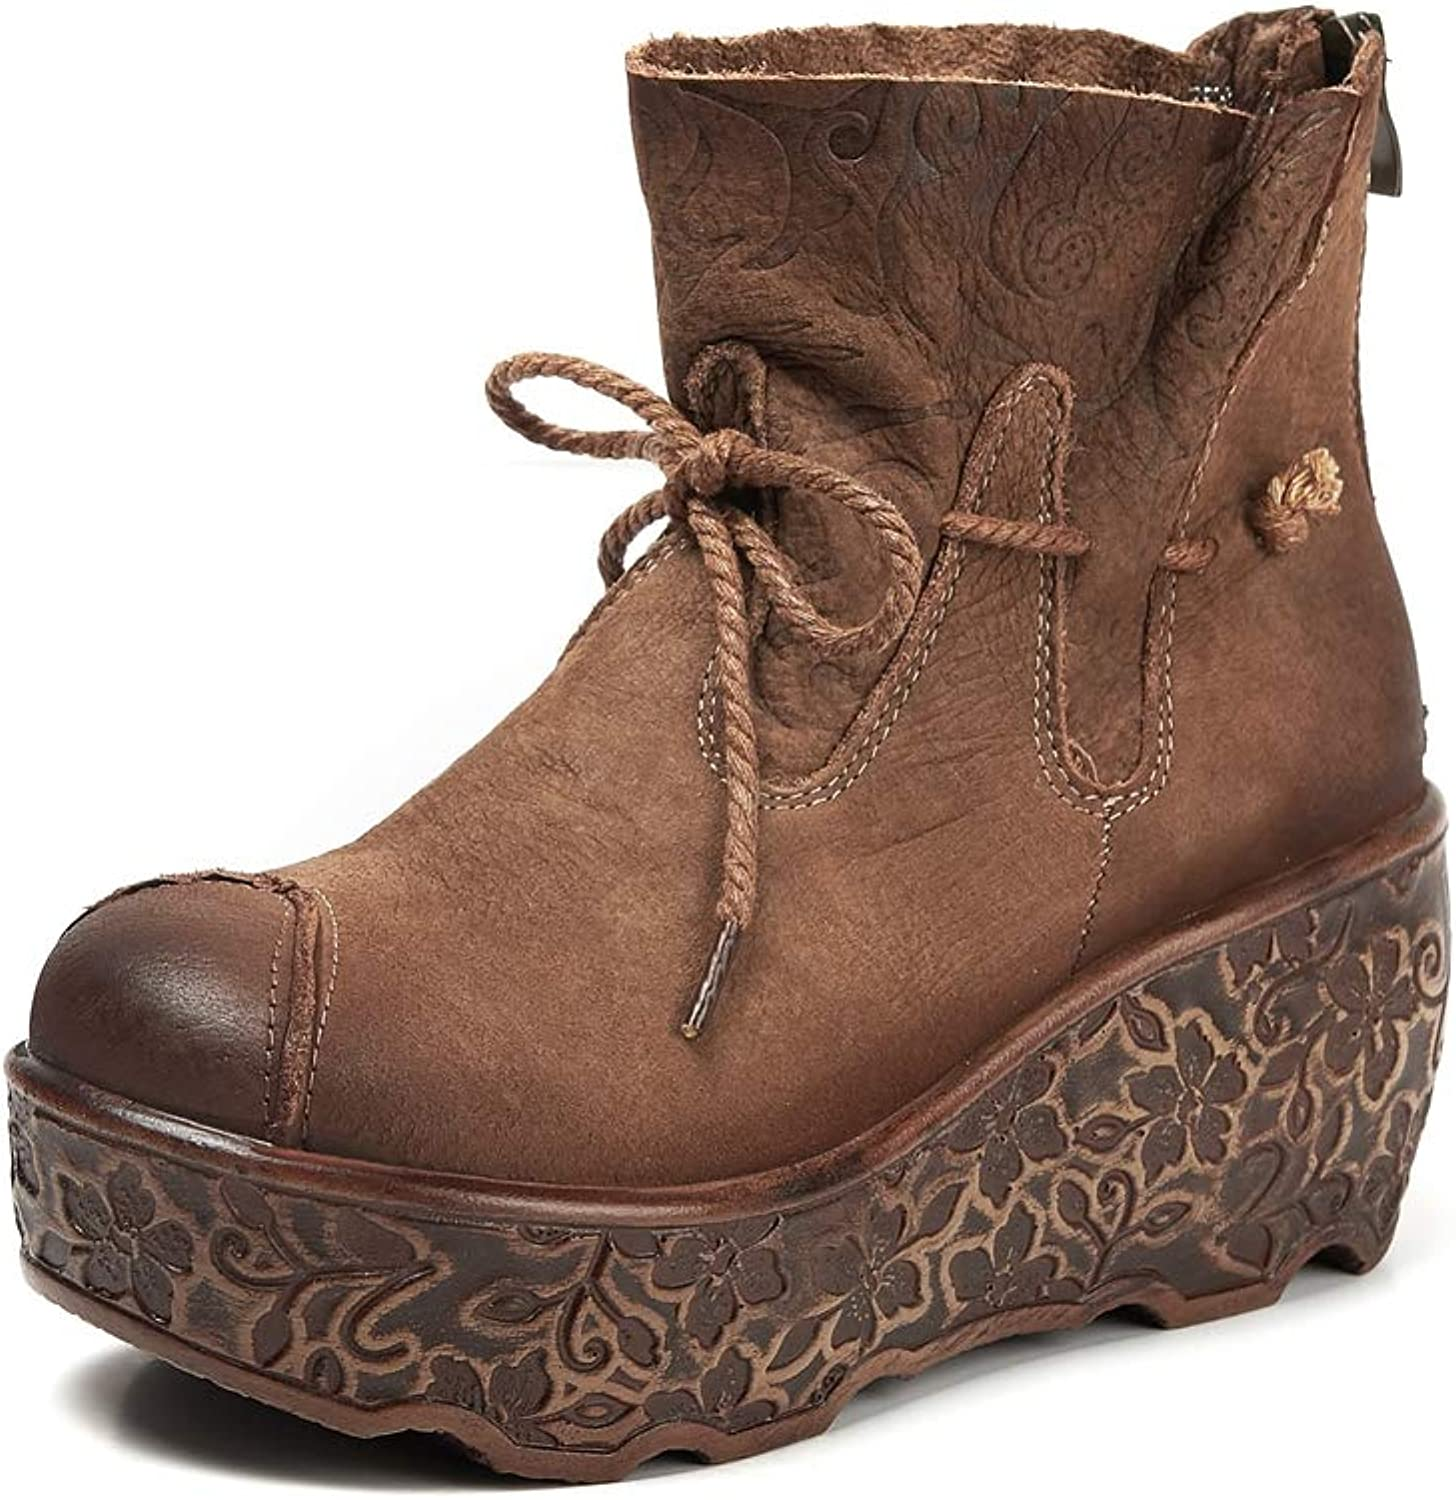 Women's Winter Leather Wedge Heel Boots, Fashion Warm Platform Martin Boots with Women's Boots.